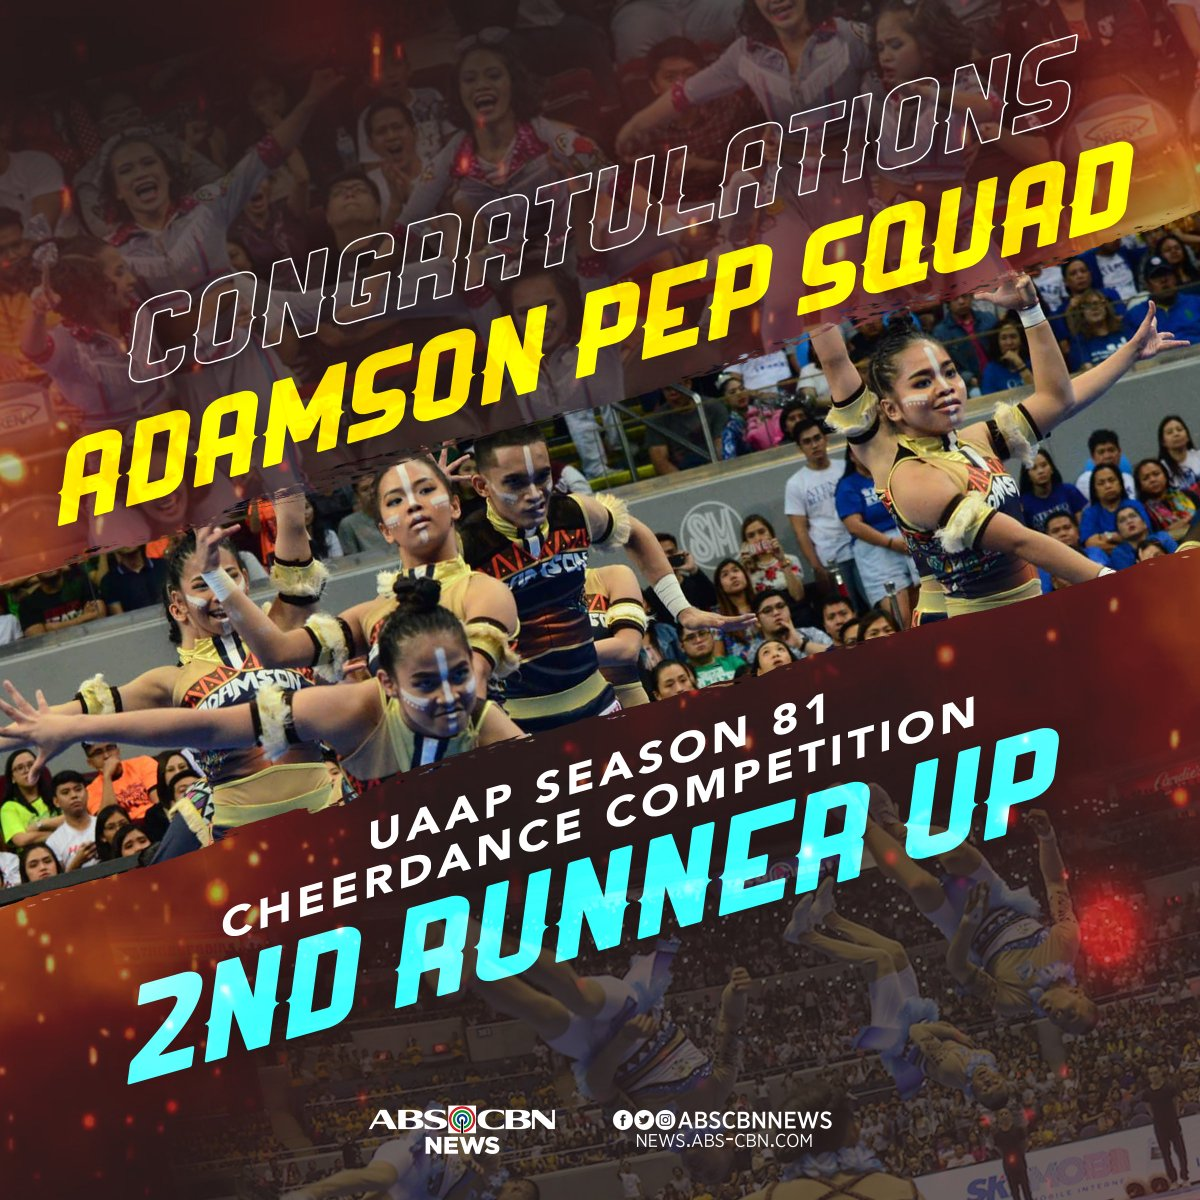 Congratulations! Adamson Pep Squad bagged the bronze medal at the #UAAPCDC2018 #OrangeIsTheNewBlue.